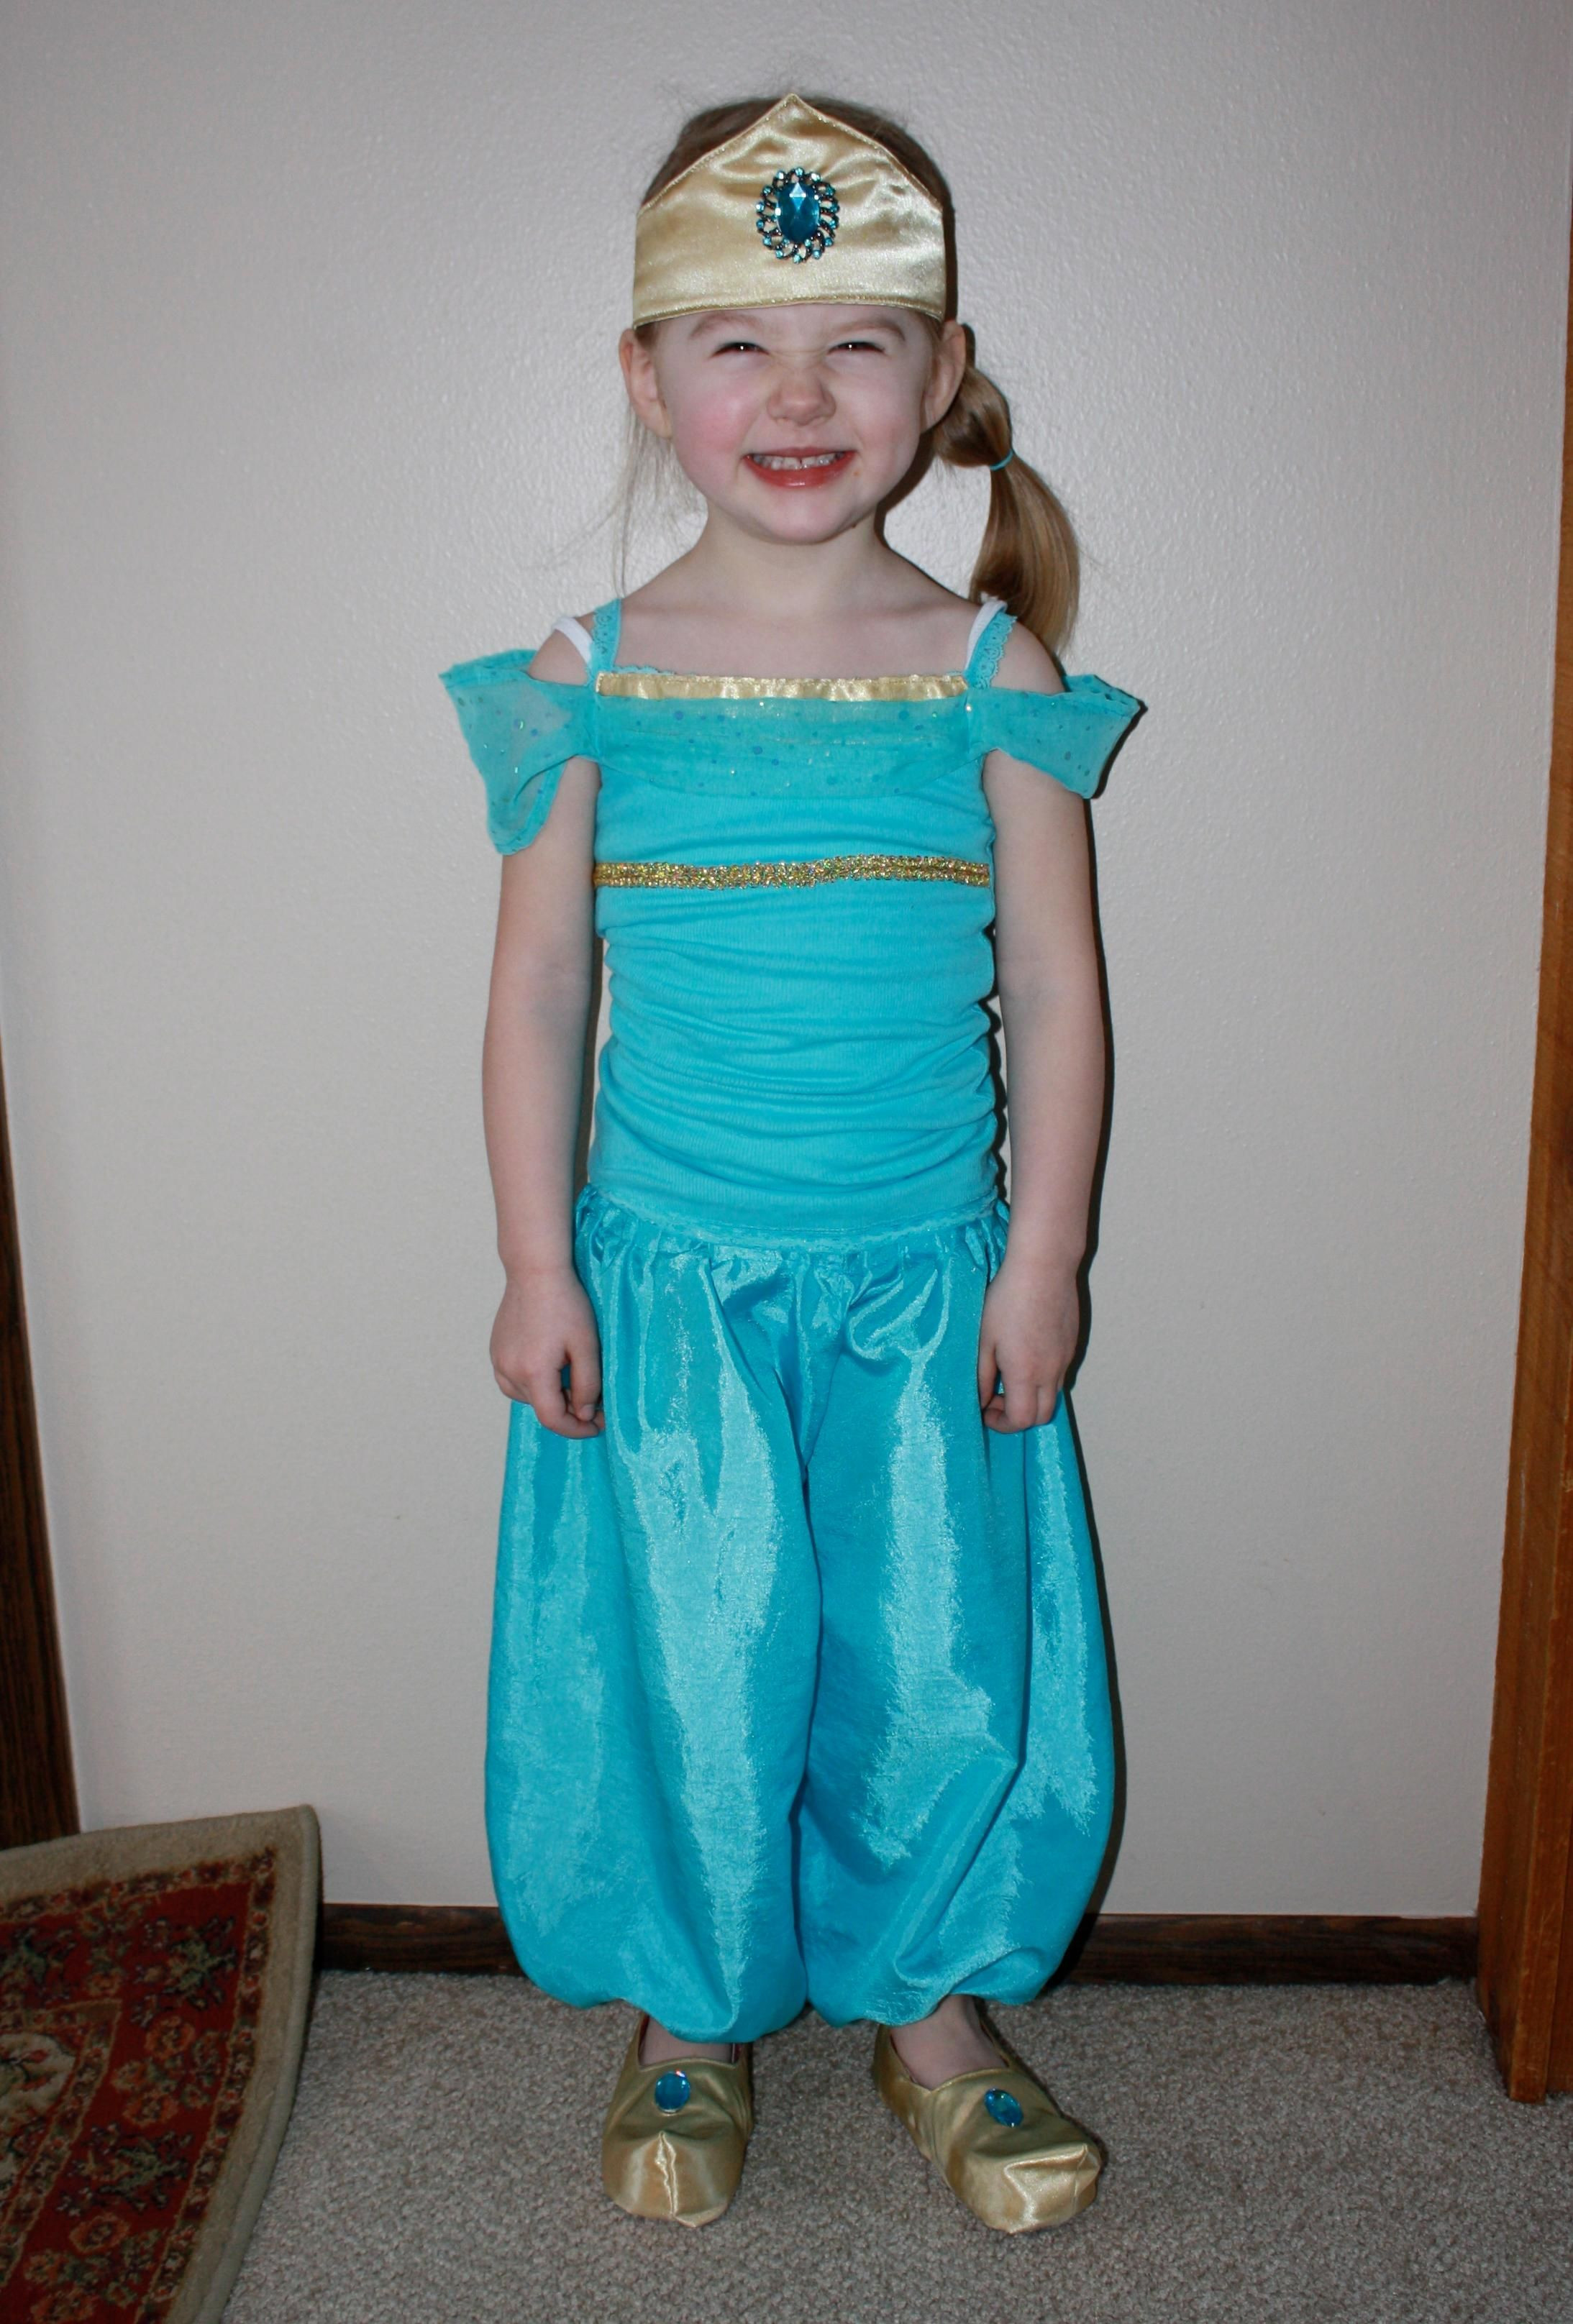 Best ideas about Jasmine DIY Costume . Save or Pin DIY Fairy Costume DIY princess jasmine costume DIY Now.